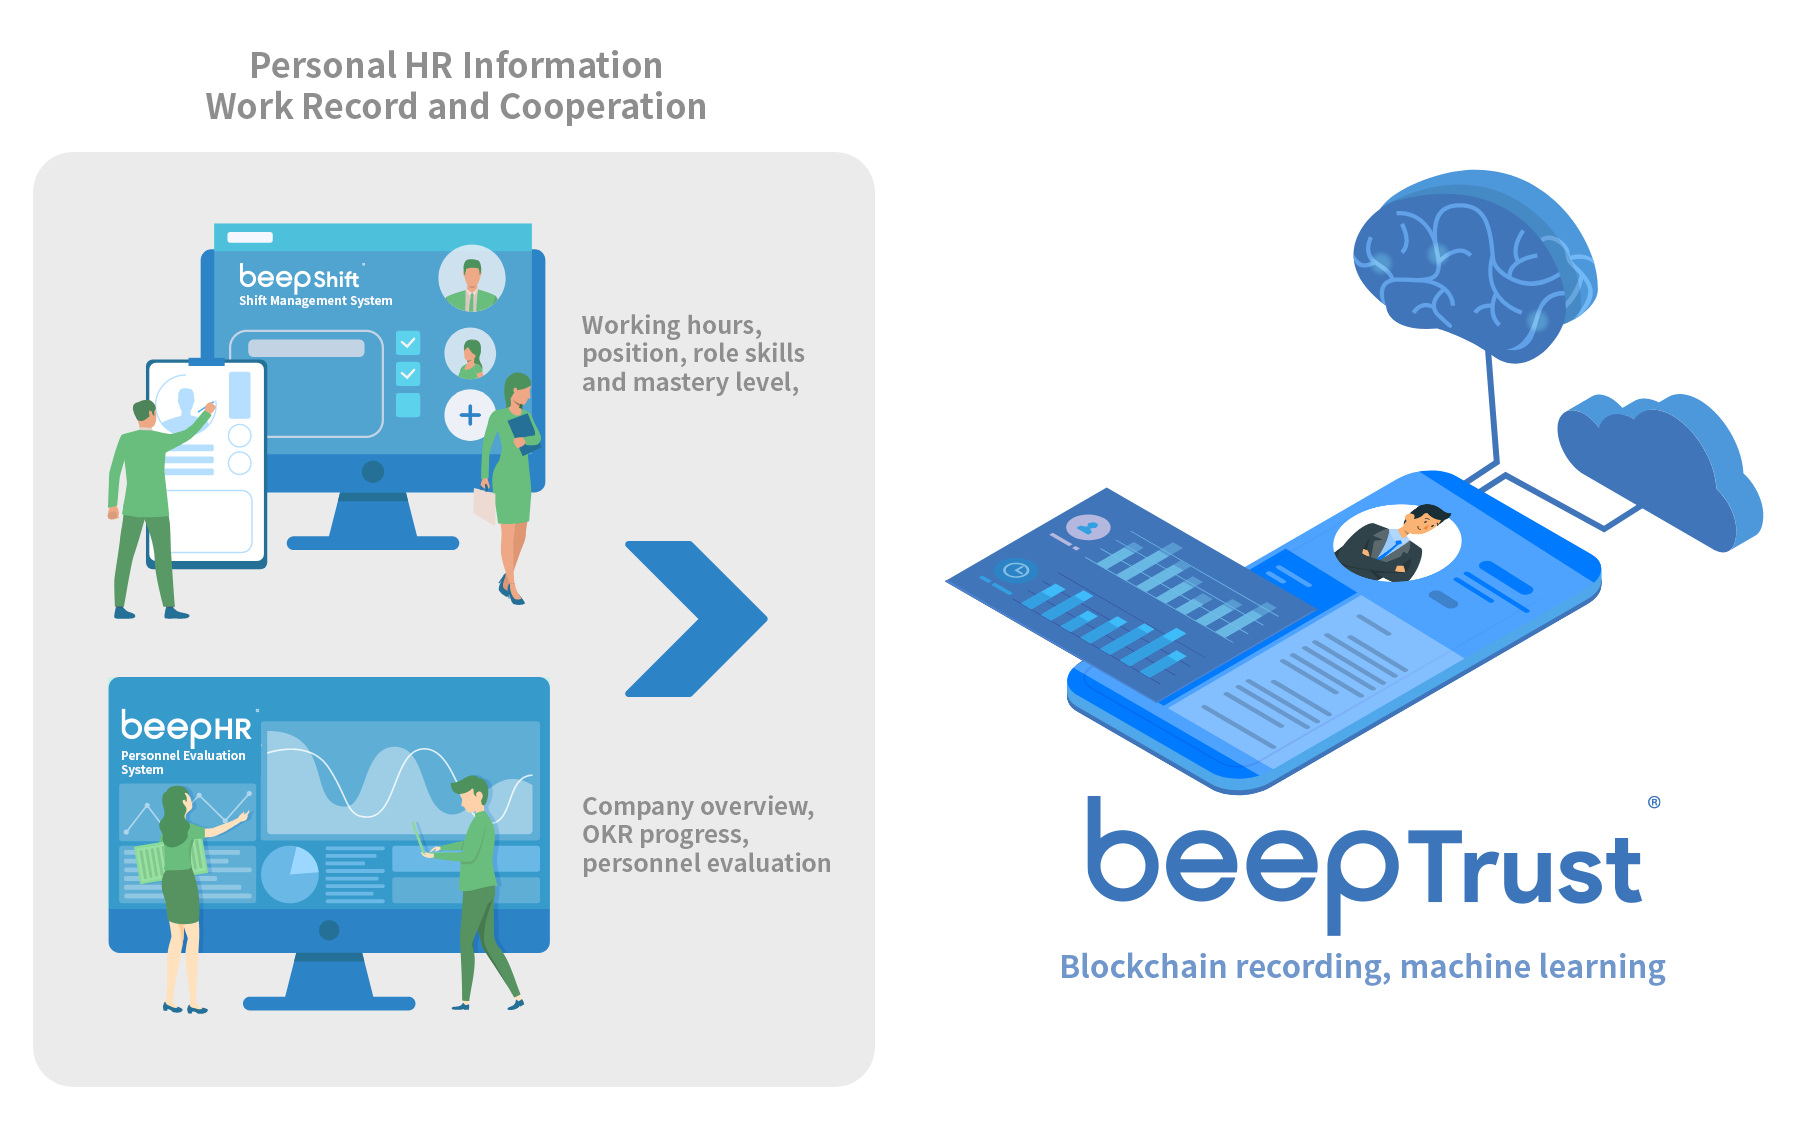 beeptrust deep learning